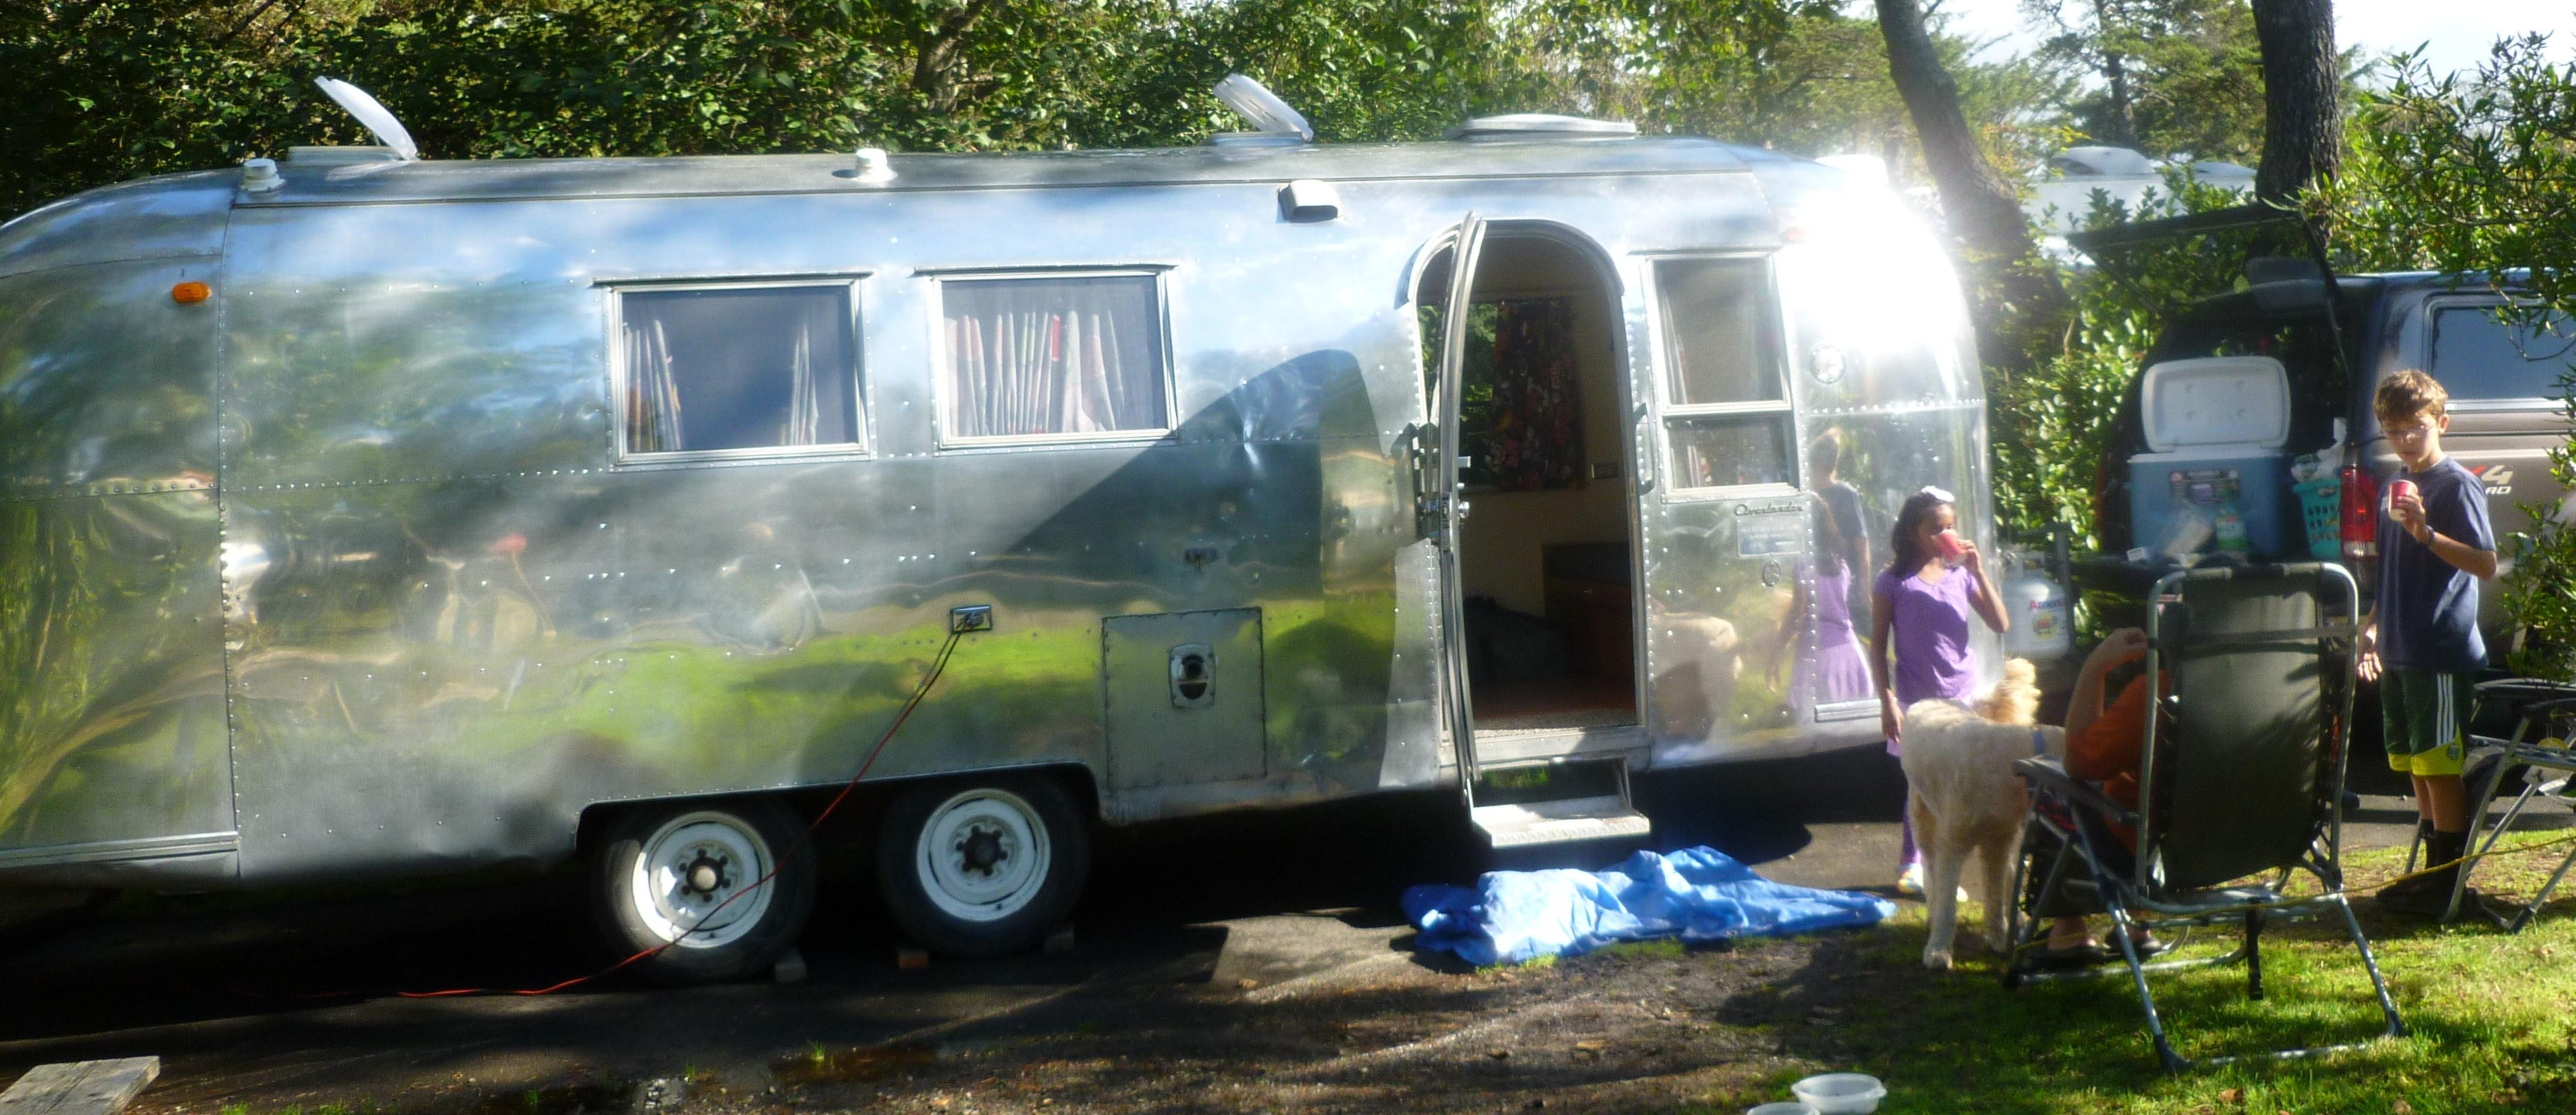 Camping Trailers Rentals With Cool Styles In Thailand Http Backgroundpicturesfeedionet Electricalwirediagrams Keystone Rv Springdale Travel For 2016 Car